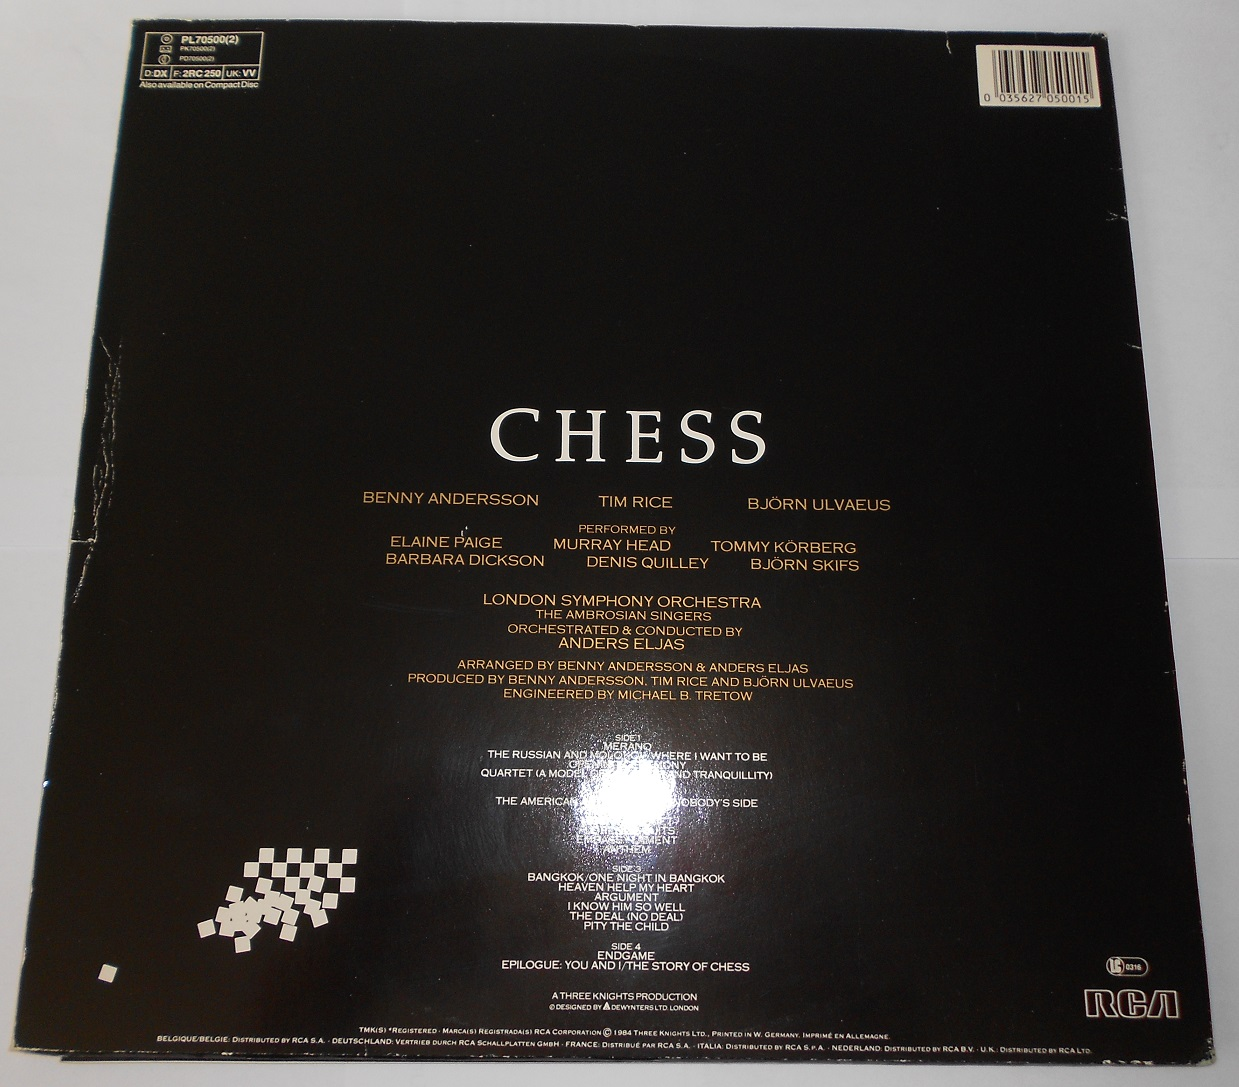 Benny Andersson, Tim Rice, Björn Ulvaeus - Chess (LP)